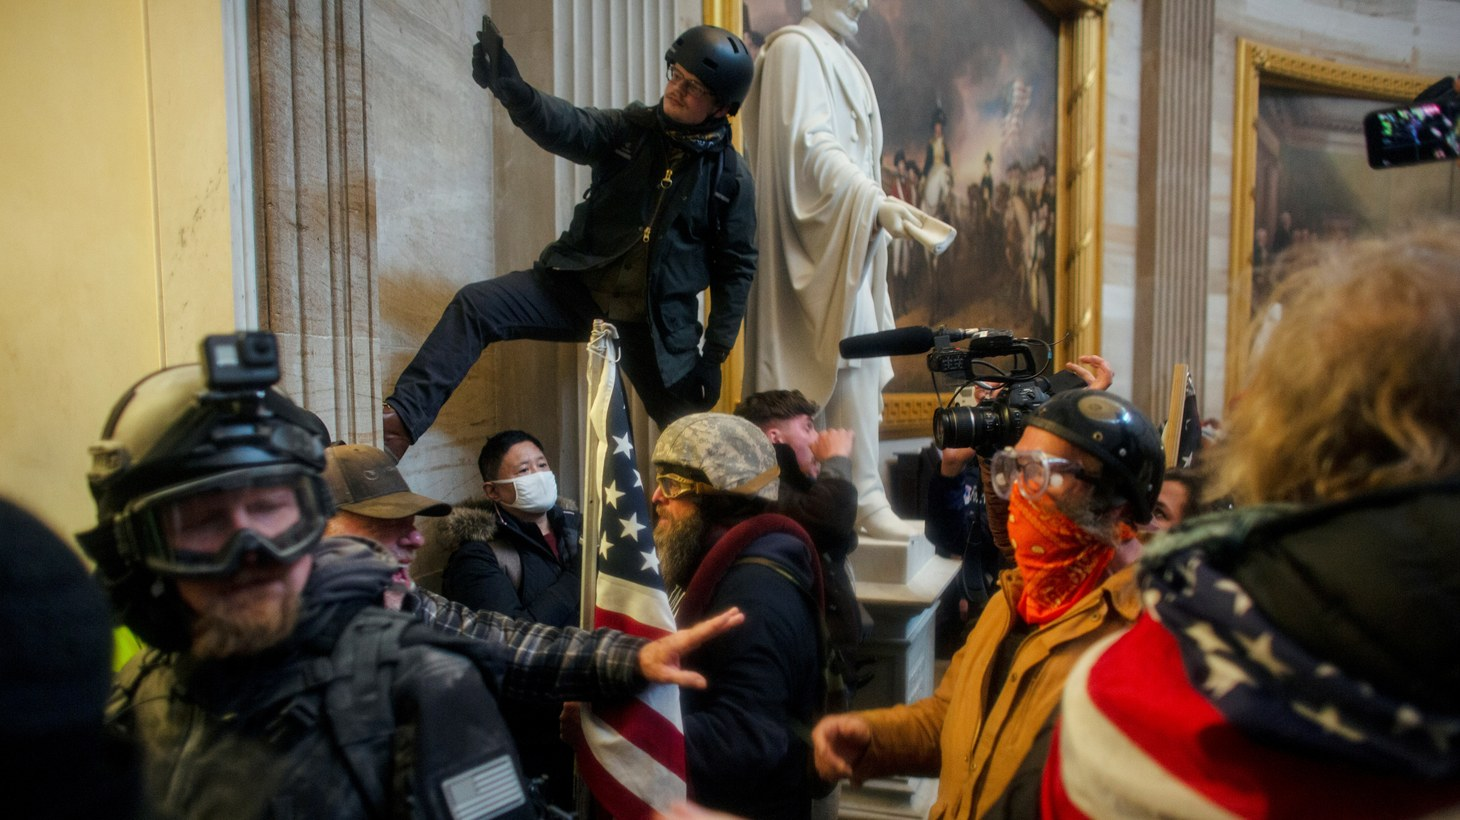 Trump supporters storm the U.S. Capitol to contest the U.S. Congress' certification of the 2020 U.S. presidential election results, in Washington, D.C., U.S. January 6, 2021.